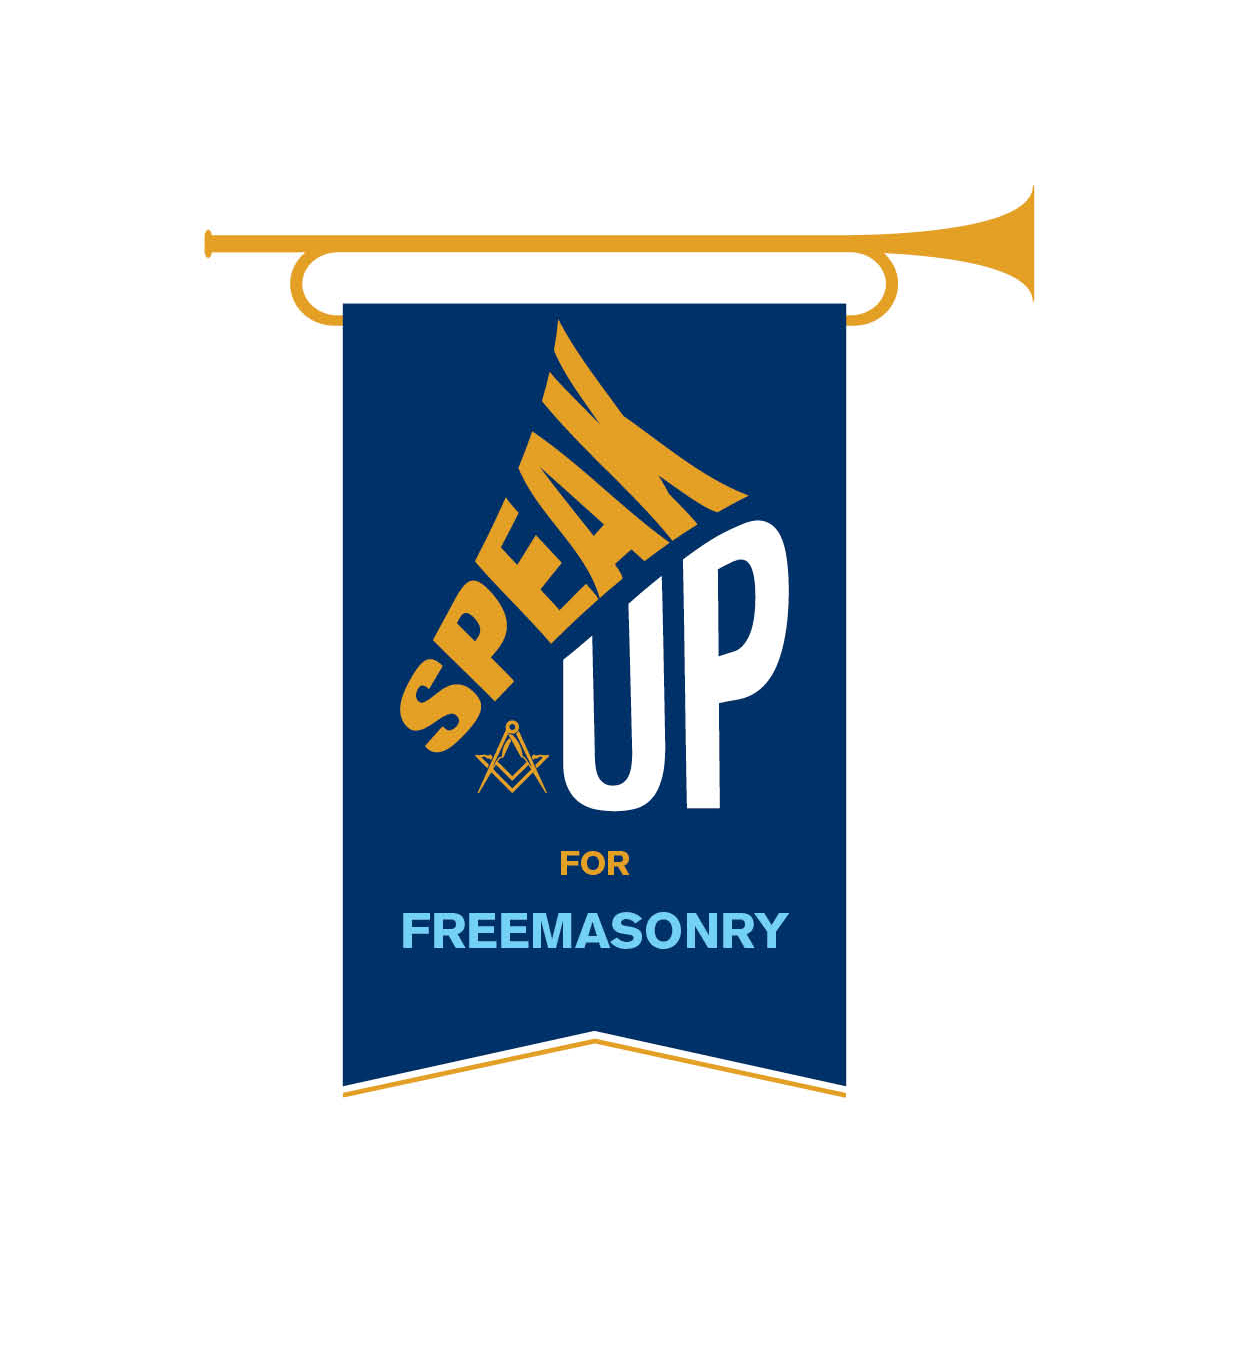 Speak up Master logo - Dark blue